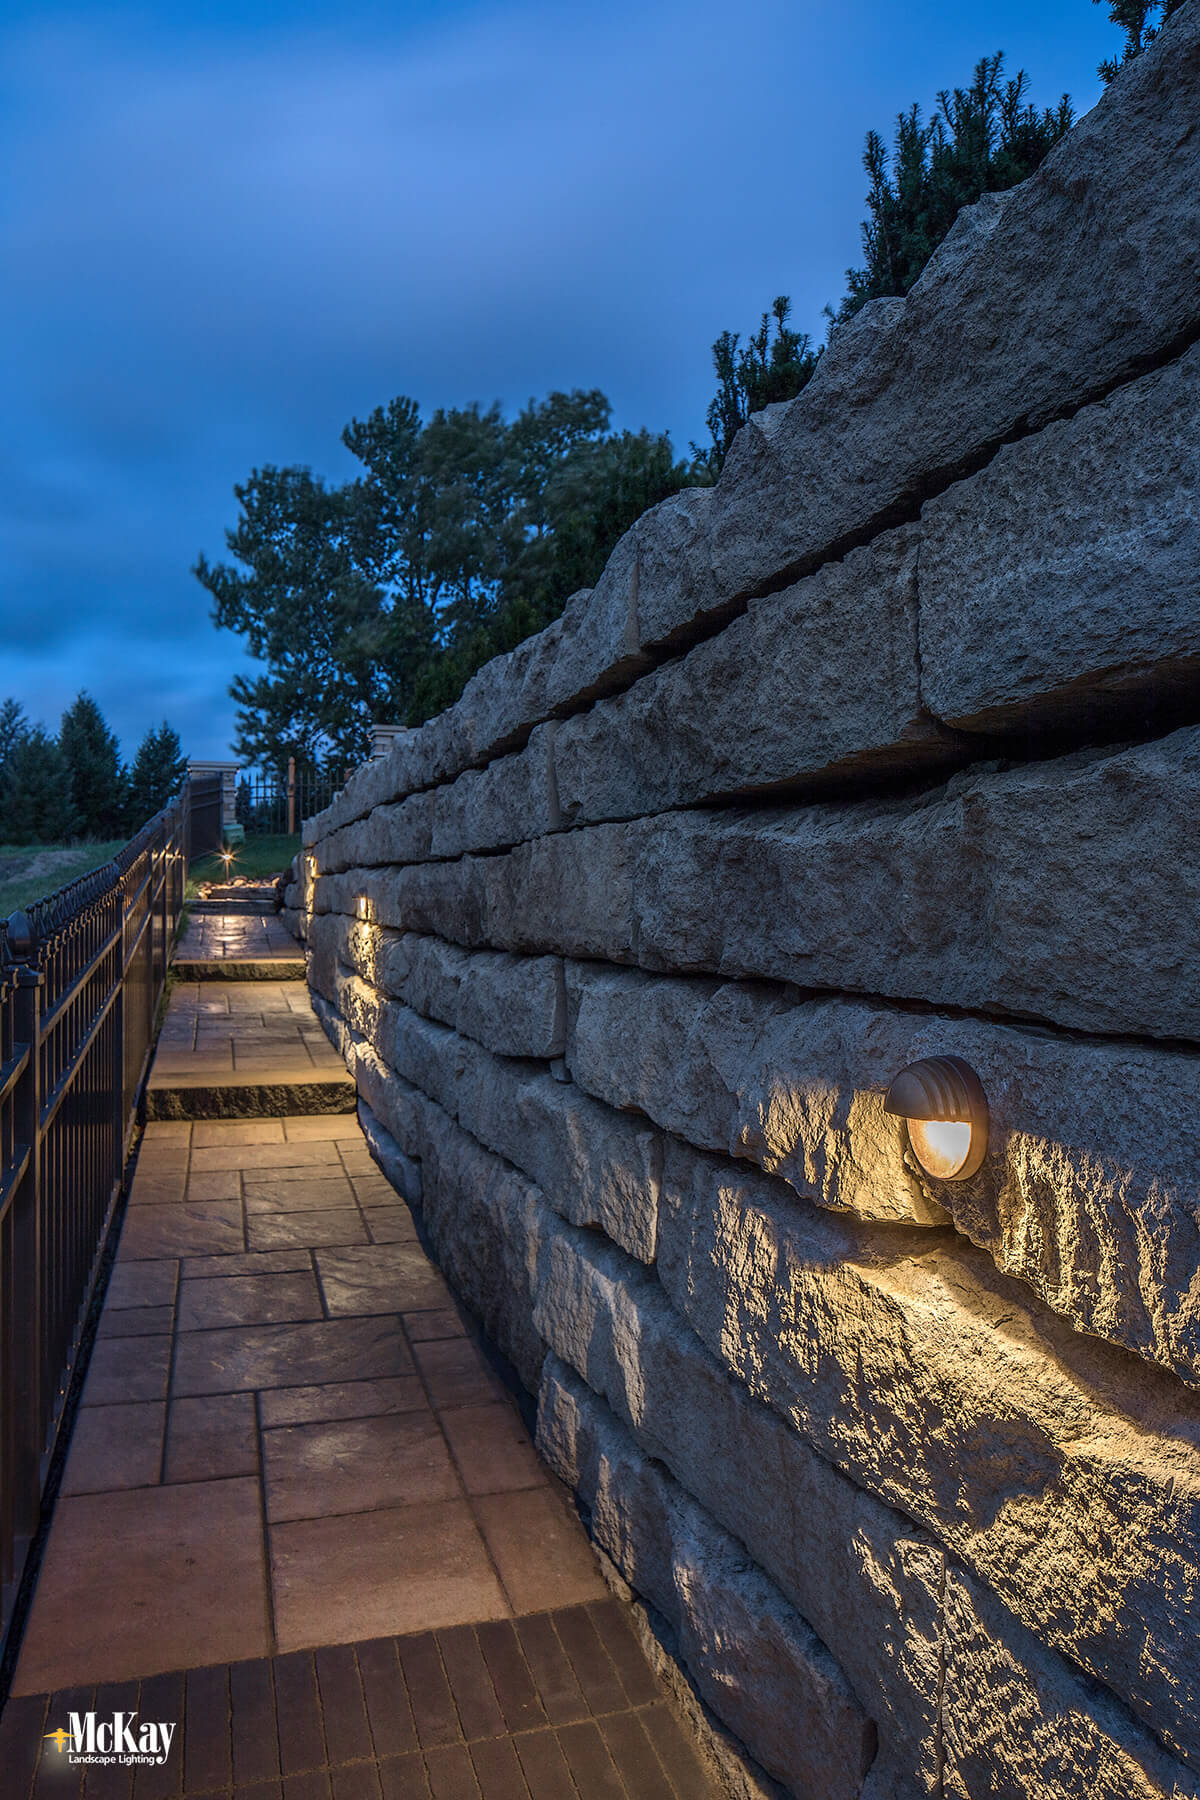 Retaining Wall Outdoor Lighting: These wall lights sit flush with the stone and effectively spread light down and out to light the path. The elevation changes as you walk. We installed a light at each step tread to help note each change in elevation. Click to learn more...   McKay Landscape Lighting - Omaha Nebraska